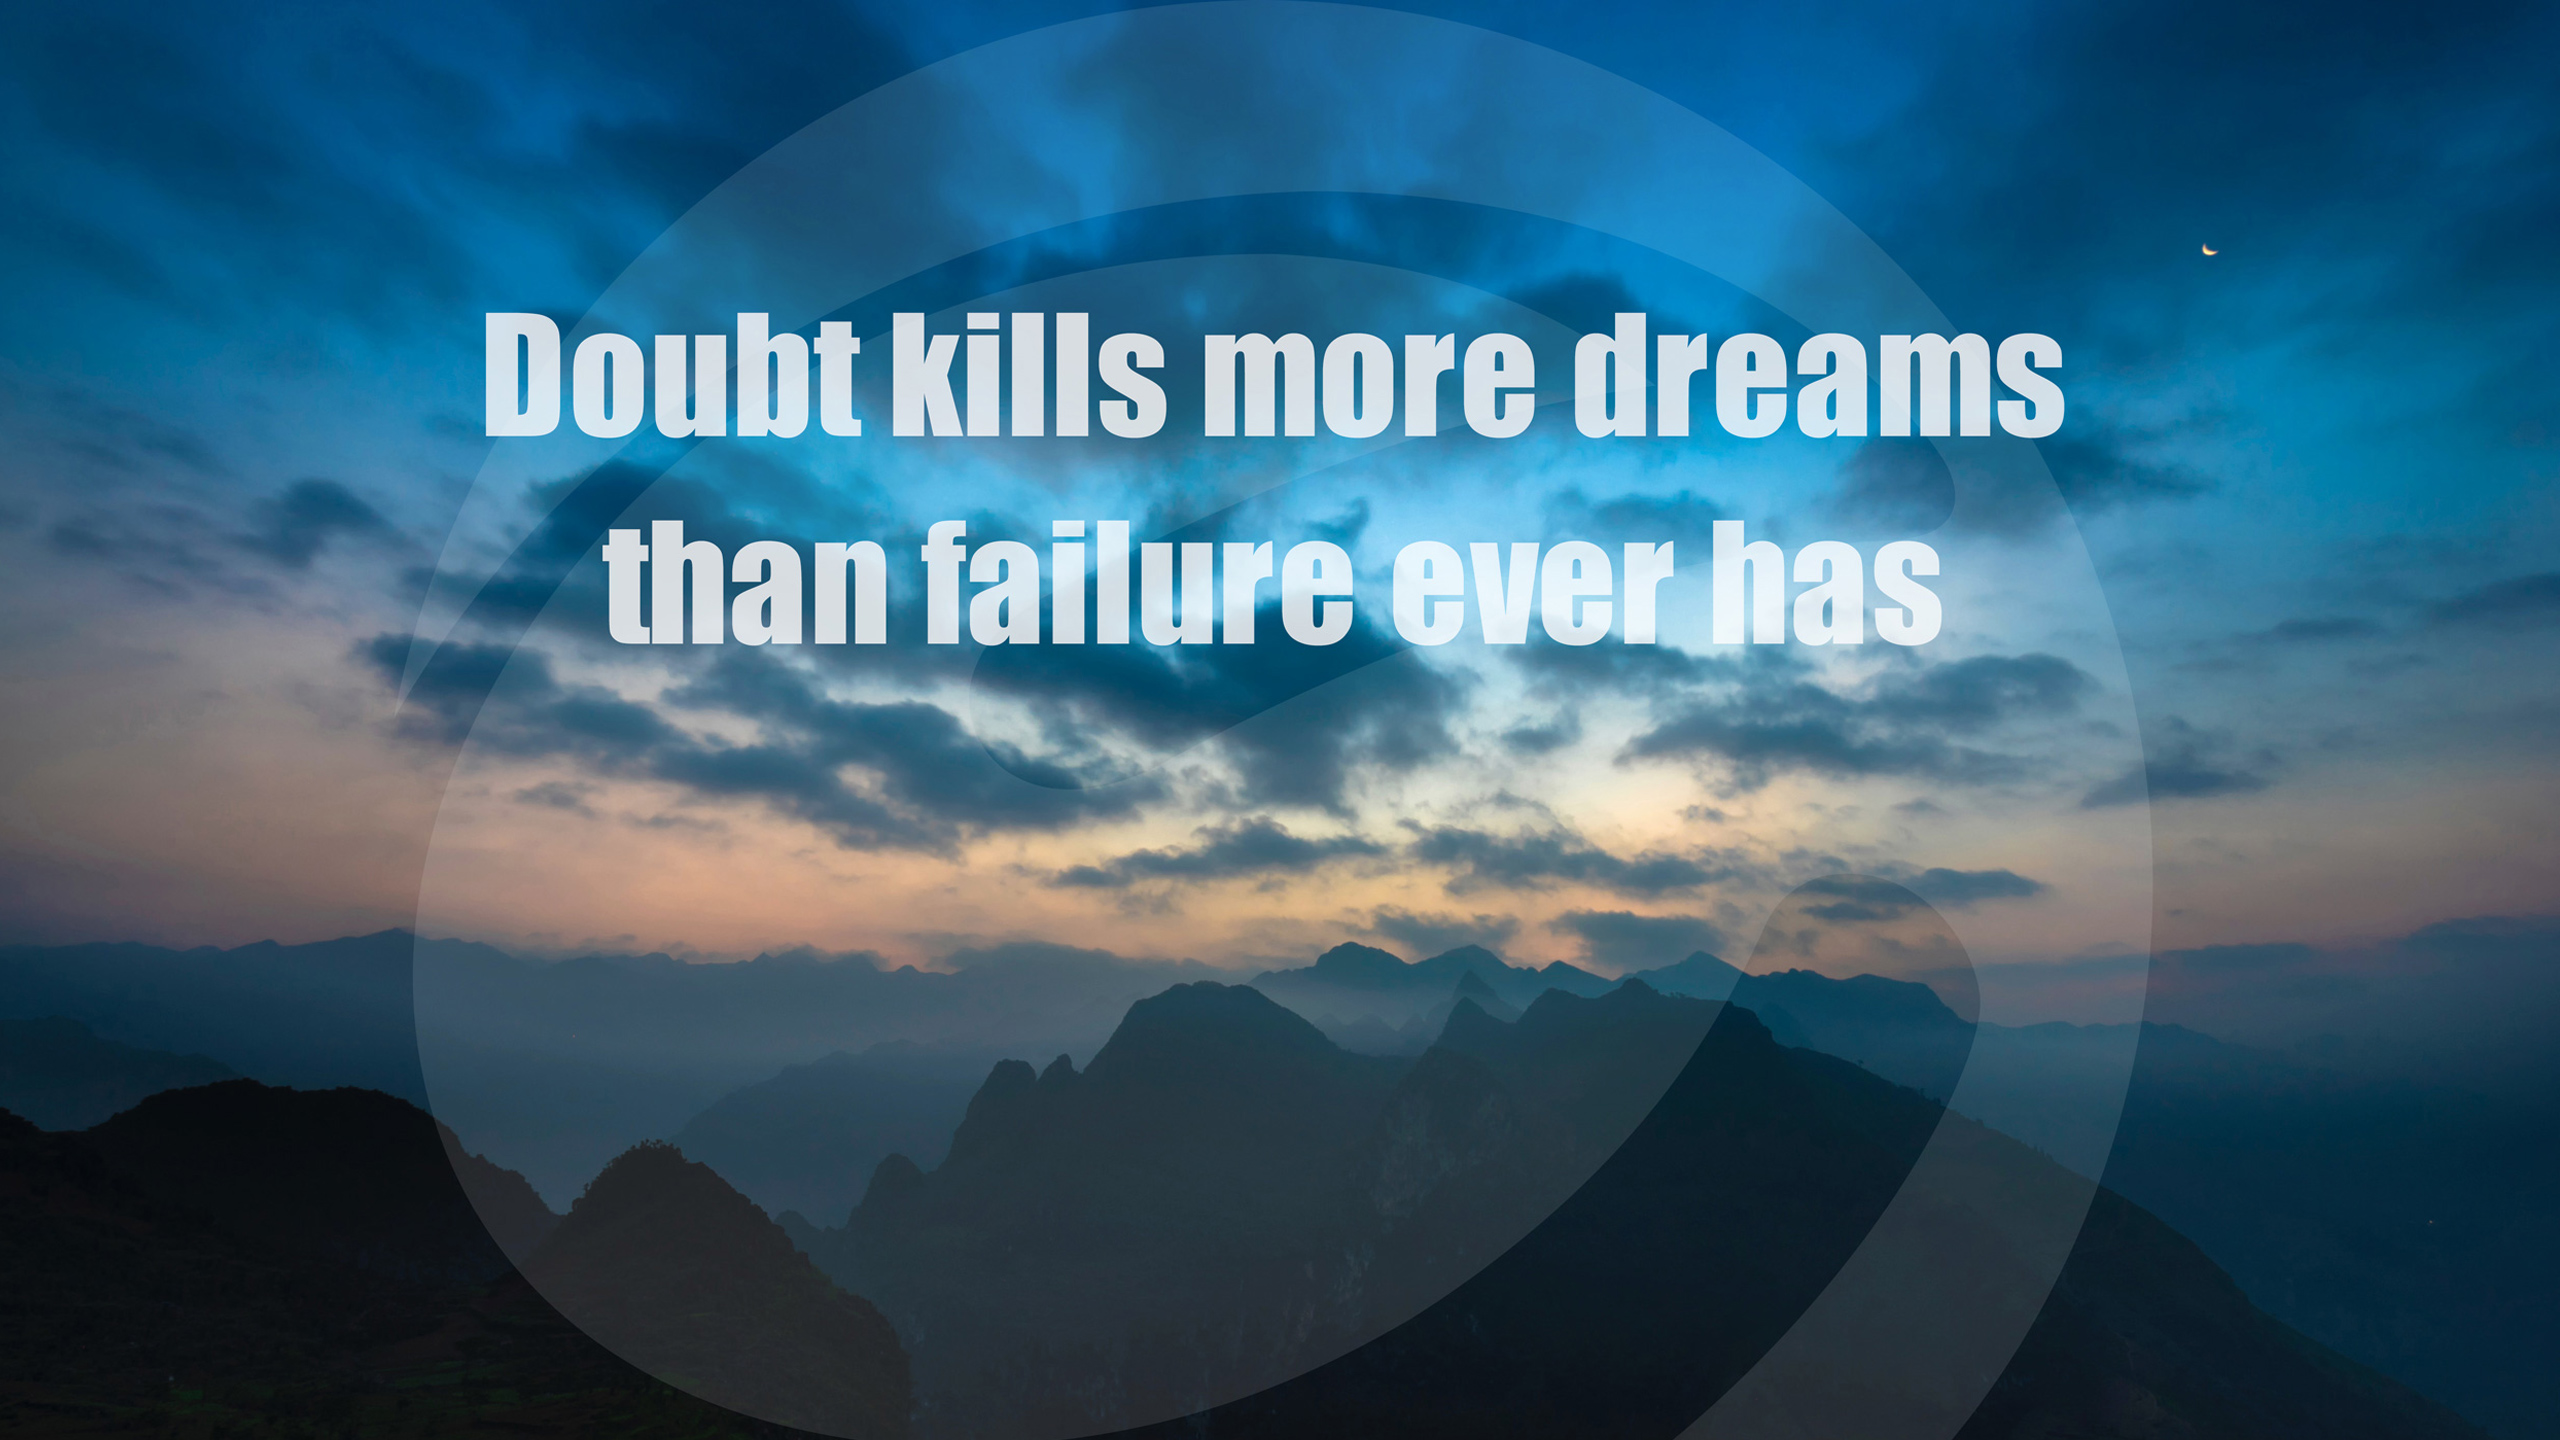 Doubt Kills Dreams Failure Quote268768386 - Doubt Kills Dreams Failure Quote - Quote, Kills, Failure, Dreams, Doubt, Compared